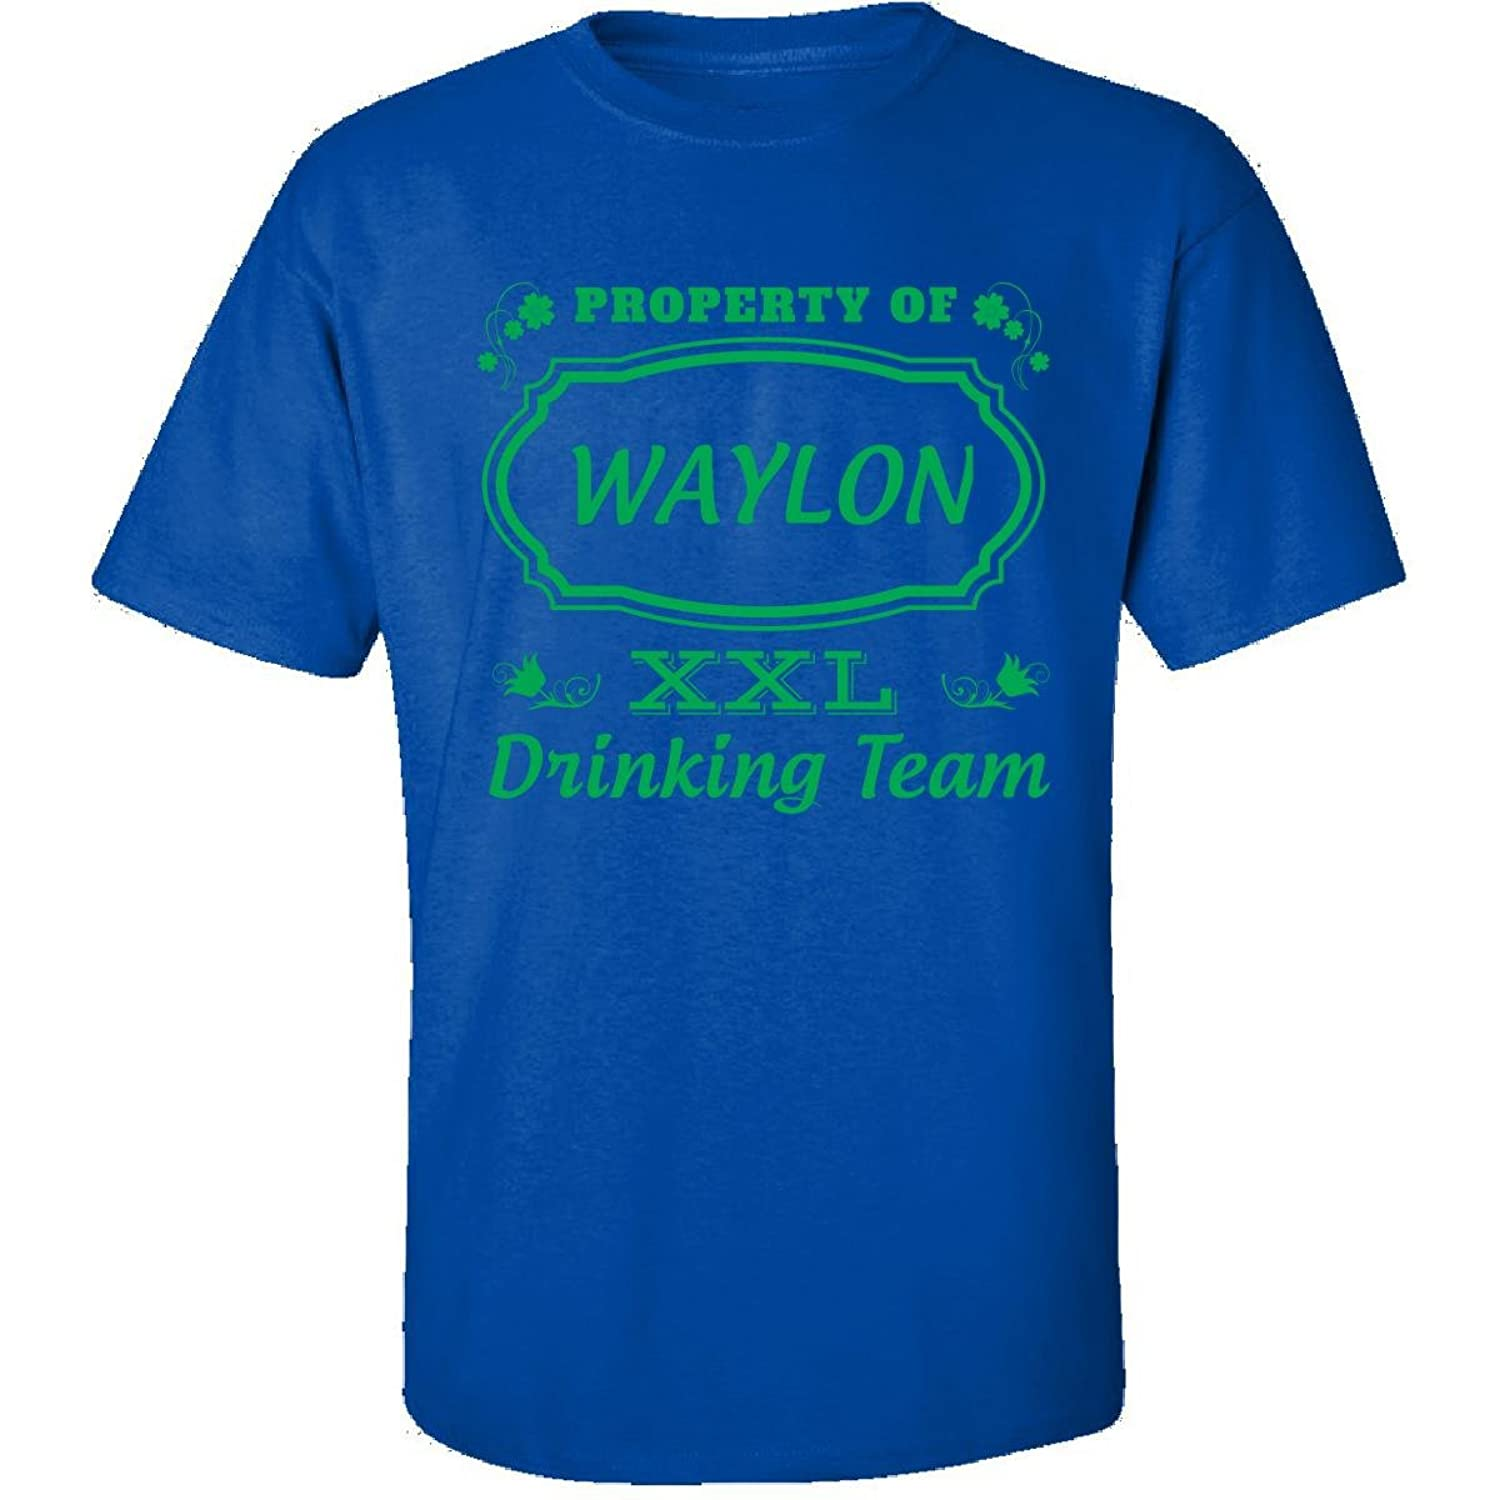 Property Of Waylon St Patrick Day Beer Drinking Team - Adult Shirt